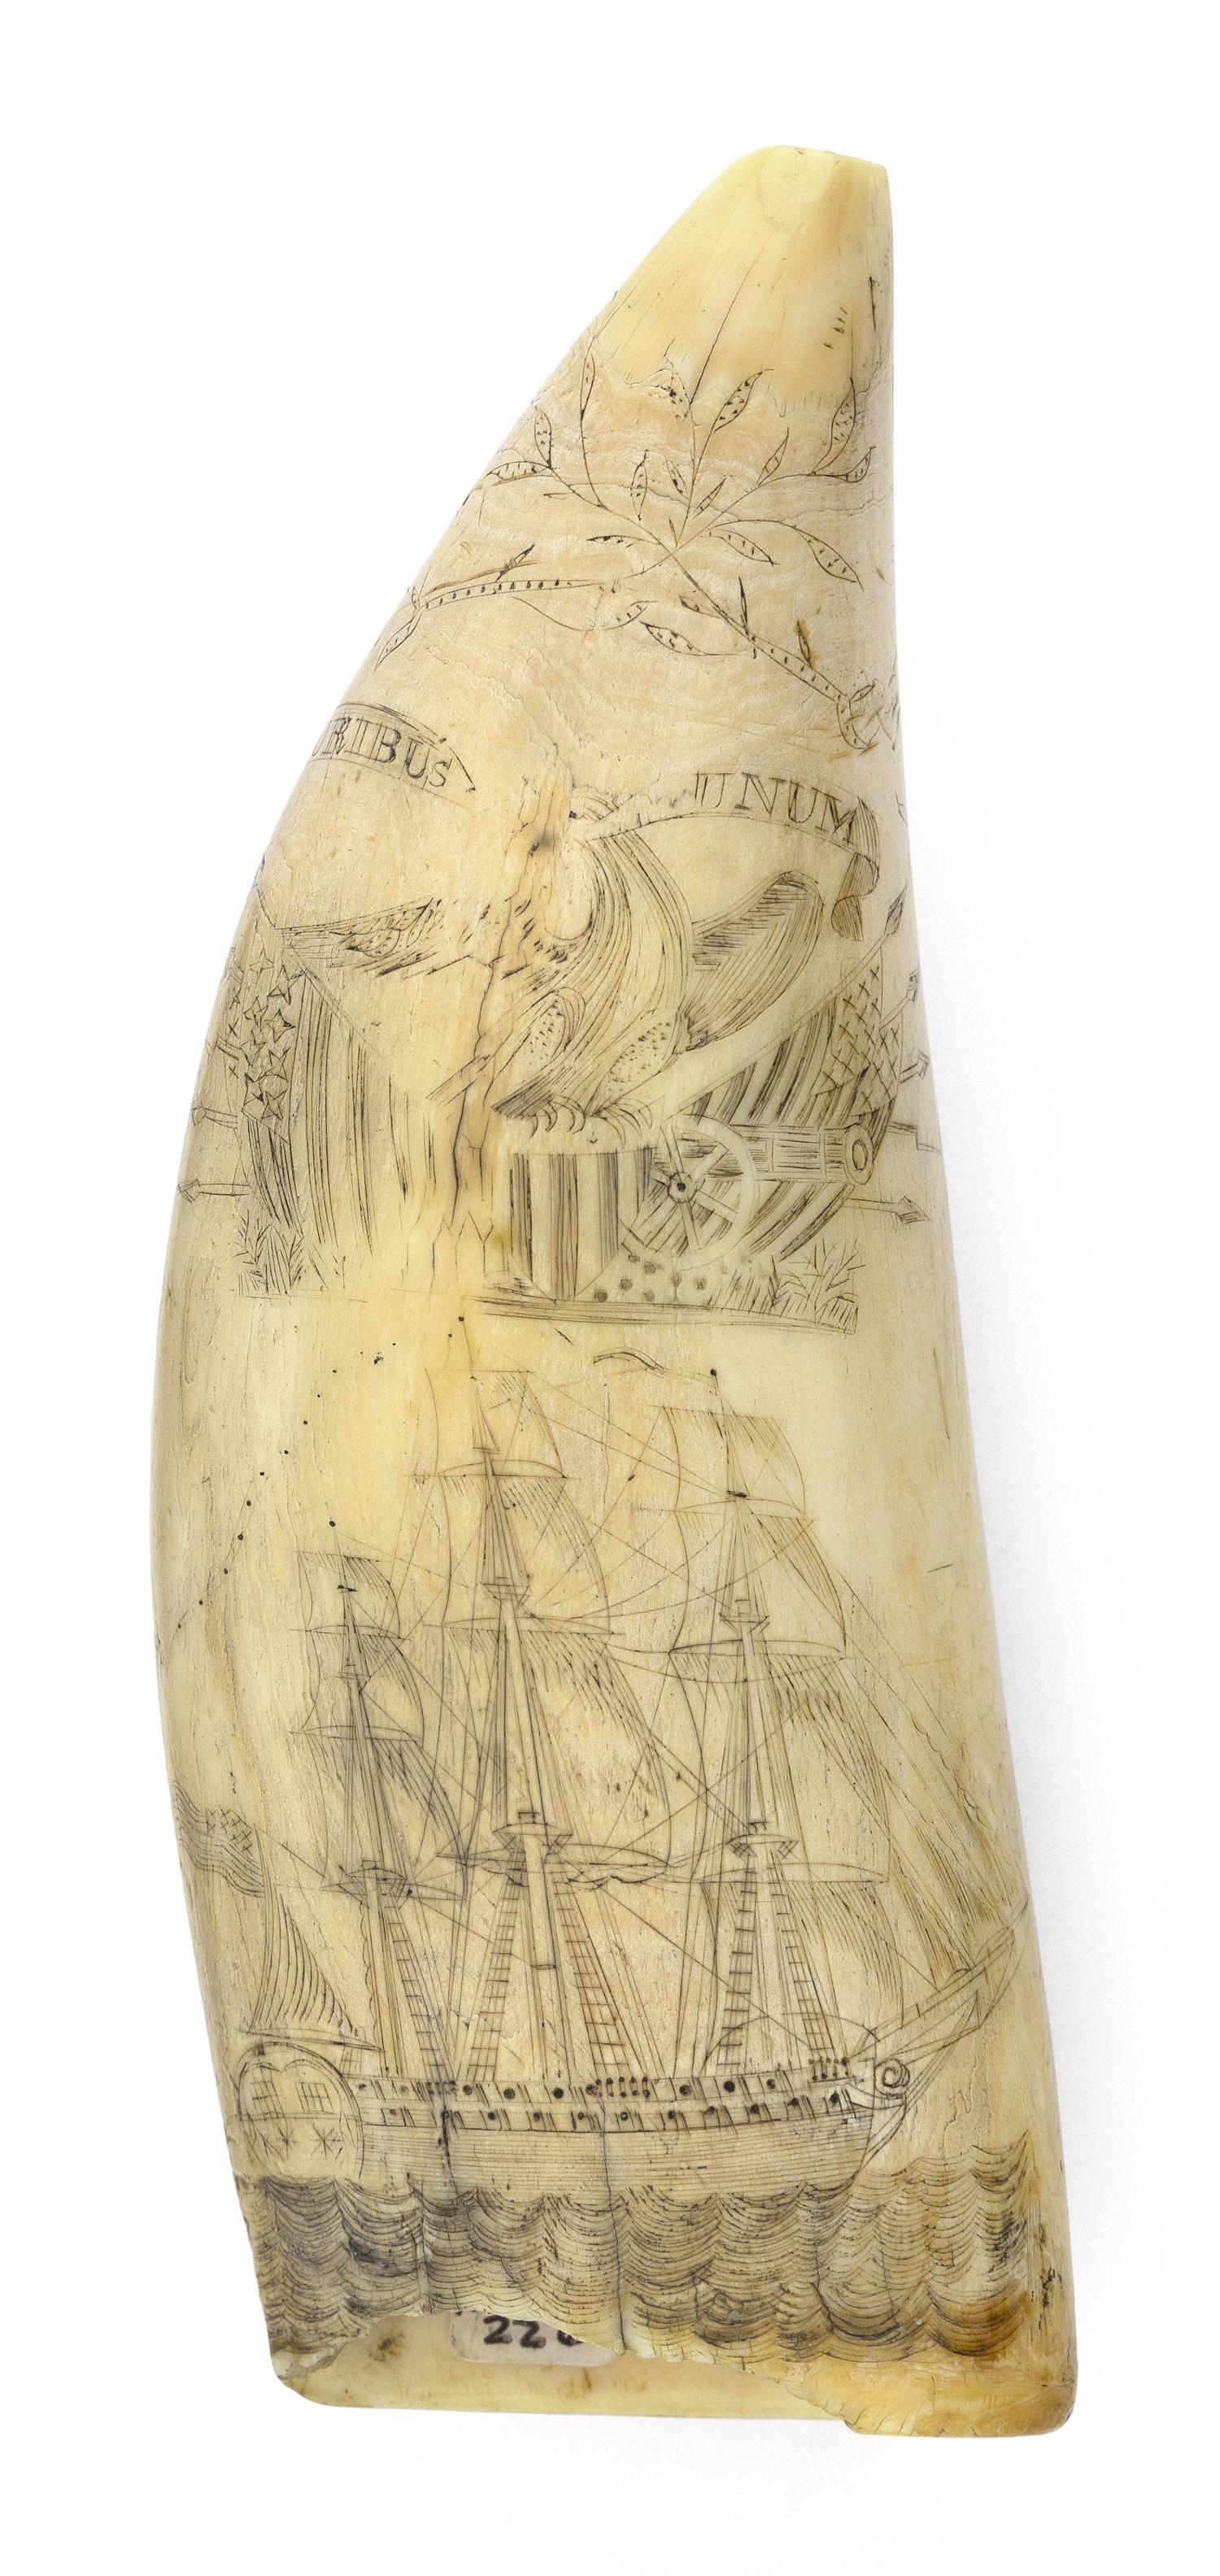 SCRIMSHAW WHALE'S TOOTH SIGNED BY WILLIAM SIZER AND DATED 1834 Collection of mostly patriotic motifs covers nearly the entire surfac..